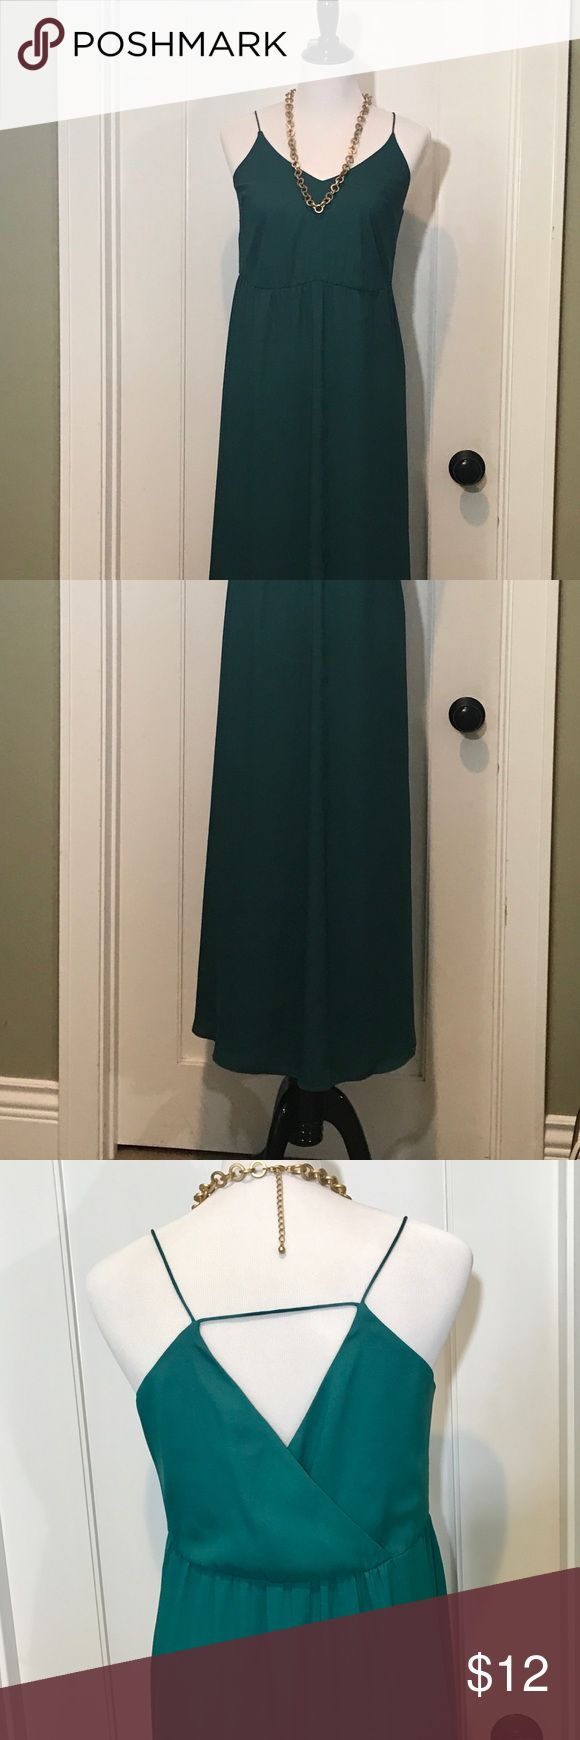 Pretty teal blue green maxi dress Anne Taylor loft maxi dress anne taylor loft Dresses Maxi